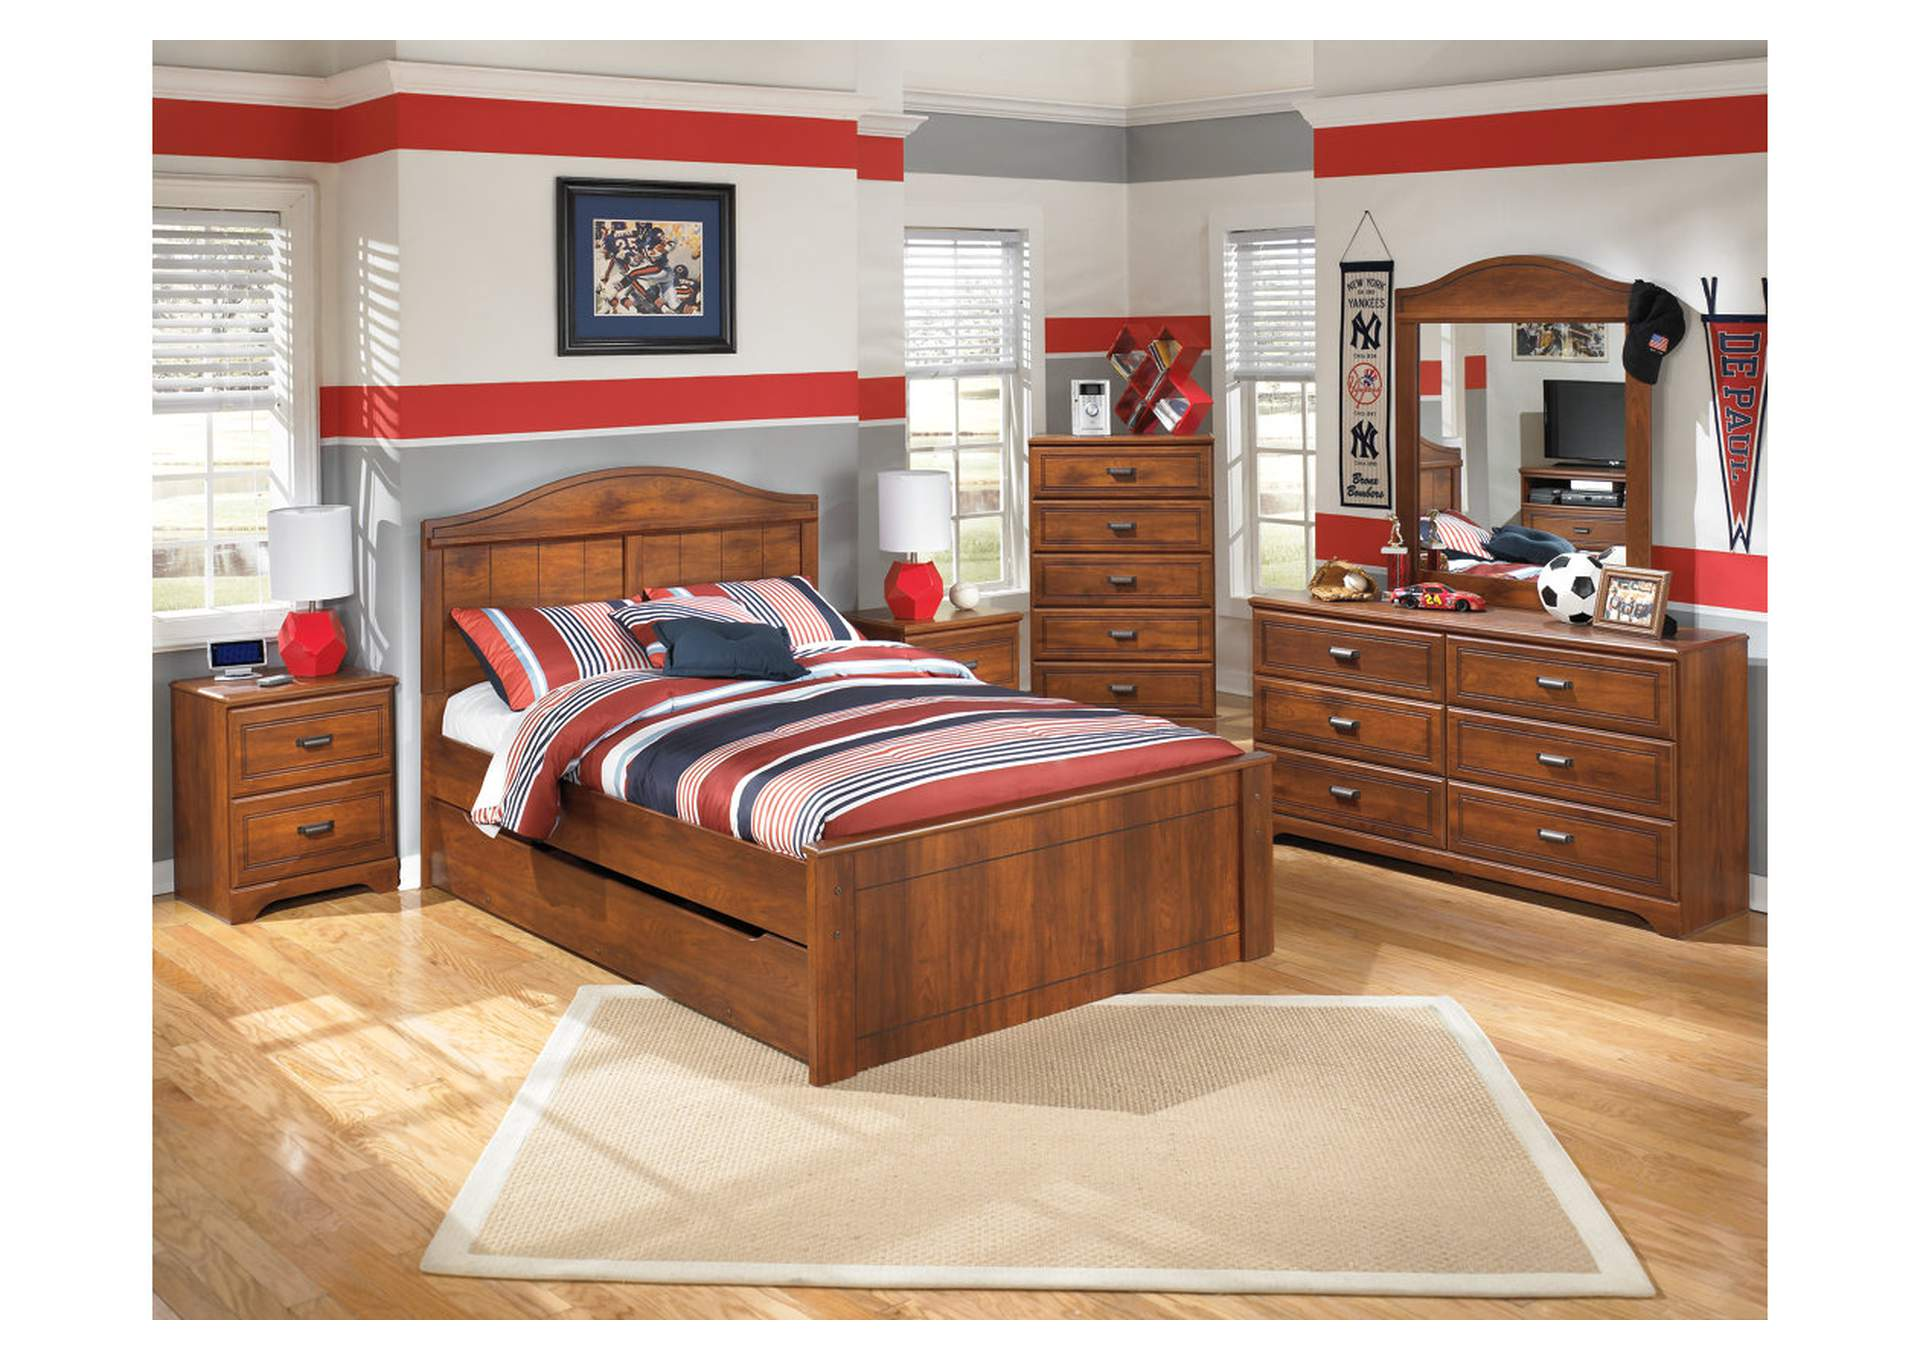 Barchan Full Panel Trundle Bed w/Dresser & Mirror,Signature Design By Ashley